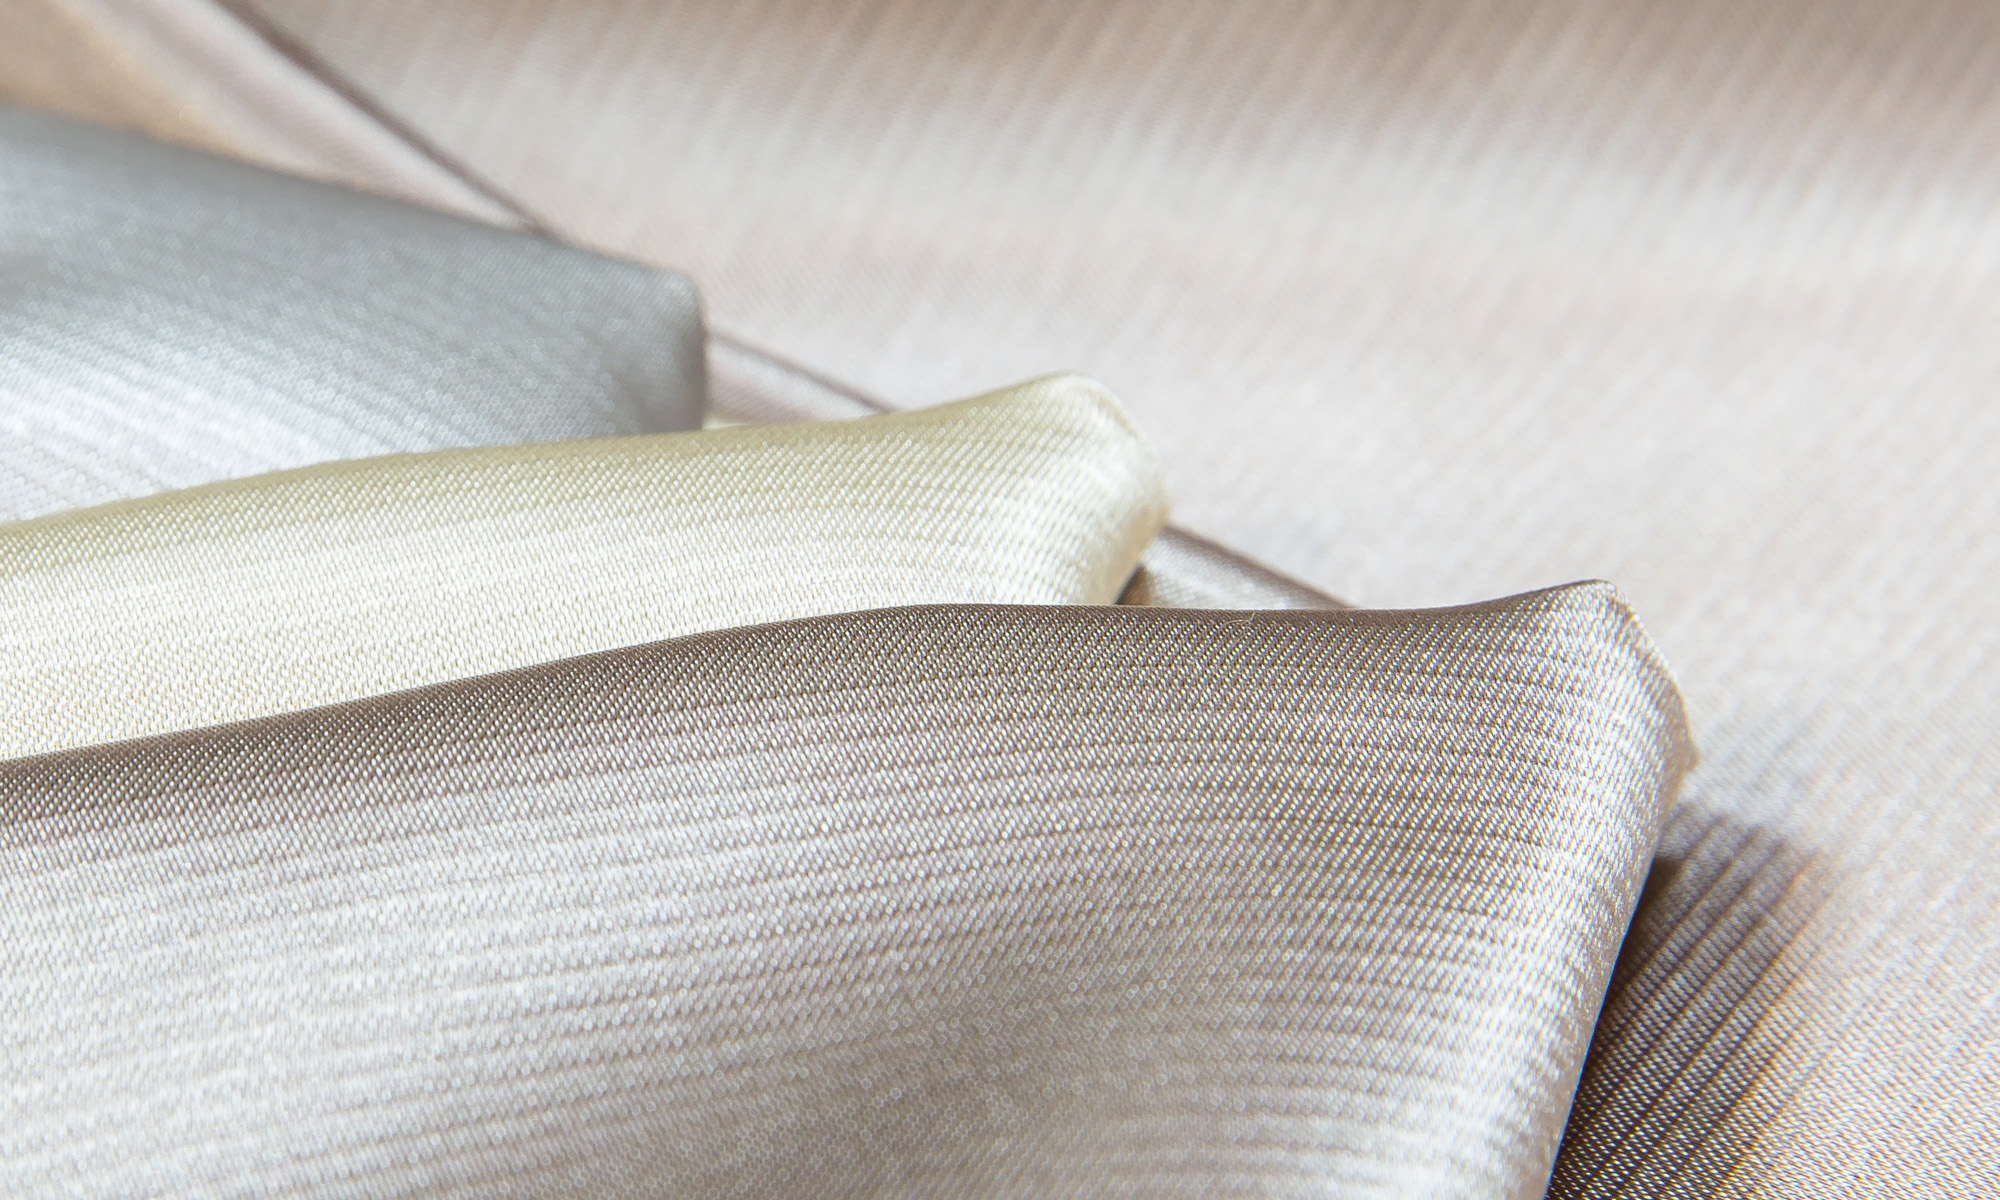 River Fabrics | Distributors of Curtaining, Upholstery and Tiebacks | Durban, South Africa